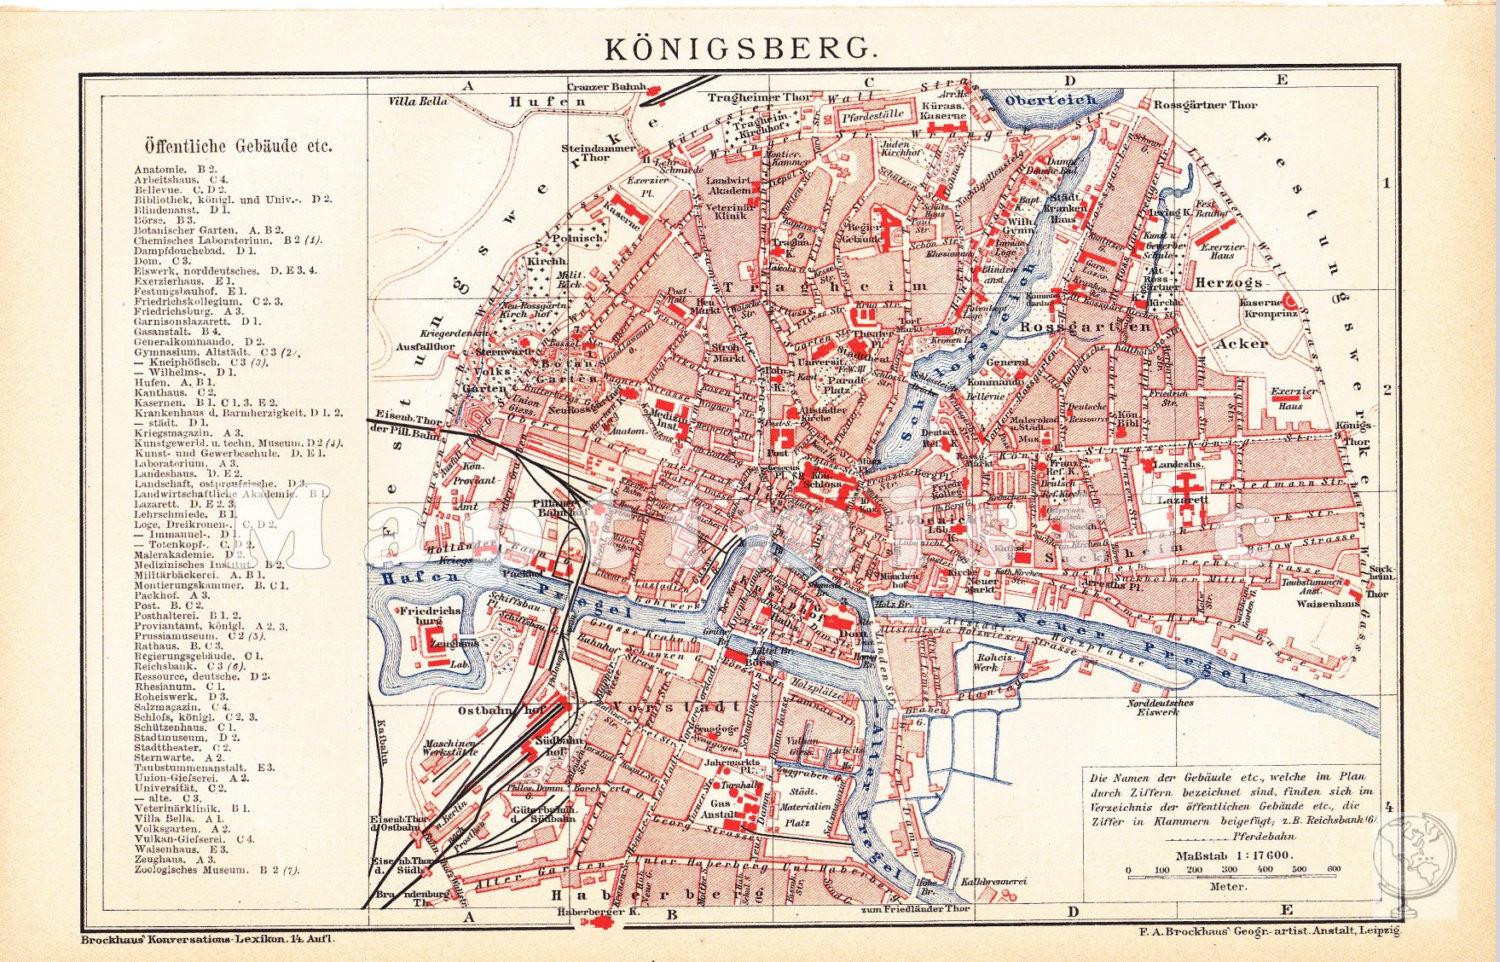 1905 Königsberg Ostpreussen map Adreßbuch [Addressbücher; Directories] der [of the]  Haupt  [Capital] und Residenzstadt [residential city] Königsberg [lka Kaliningrad] in Pr[eussen; Prussia] & der [of the] Vororte [suburbs]. Königsberg, Pr[eussen; Prussia], [1872, 1877, 1878, 1899, 1901, 1906]: [Author] Hartung, [sein Lebenslauf; his Lifespan] 1847 1919